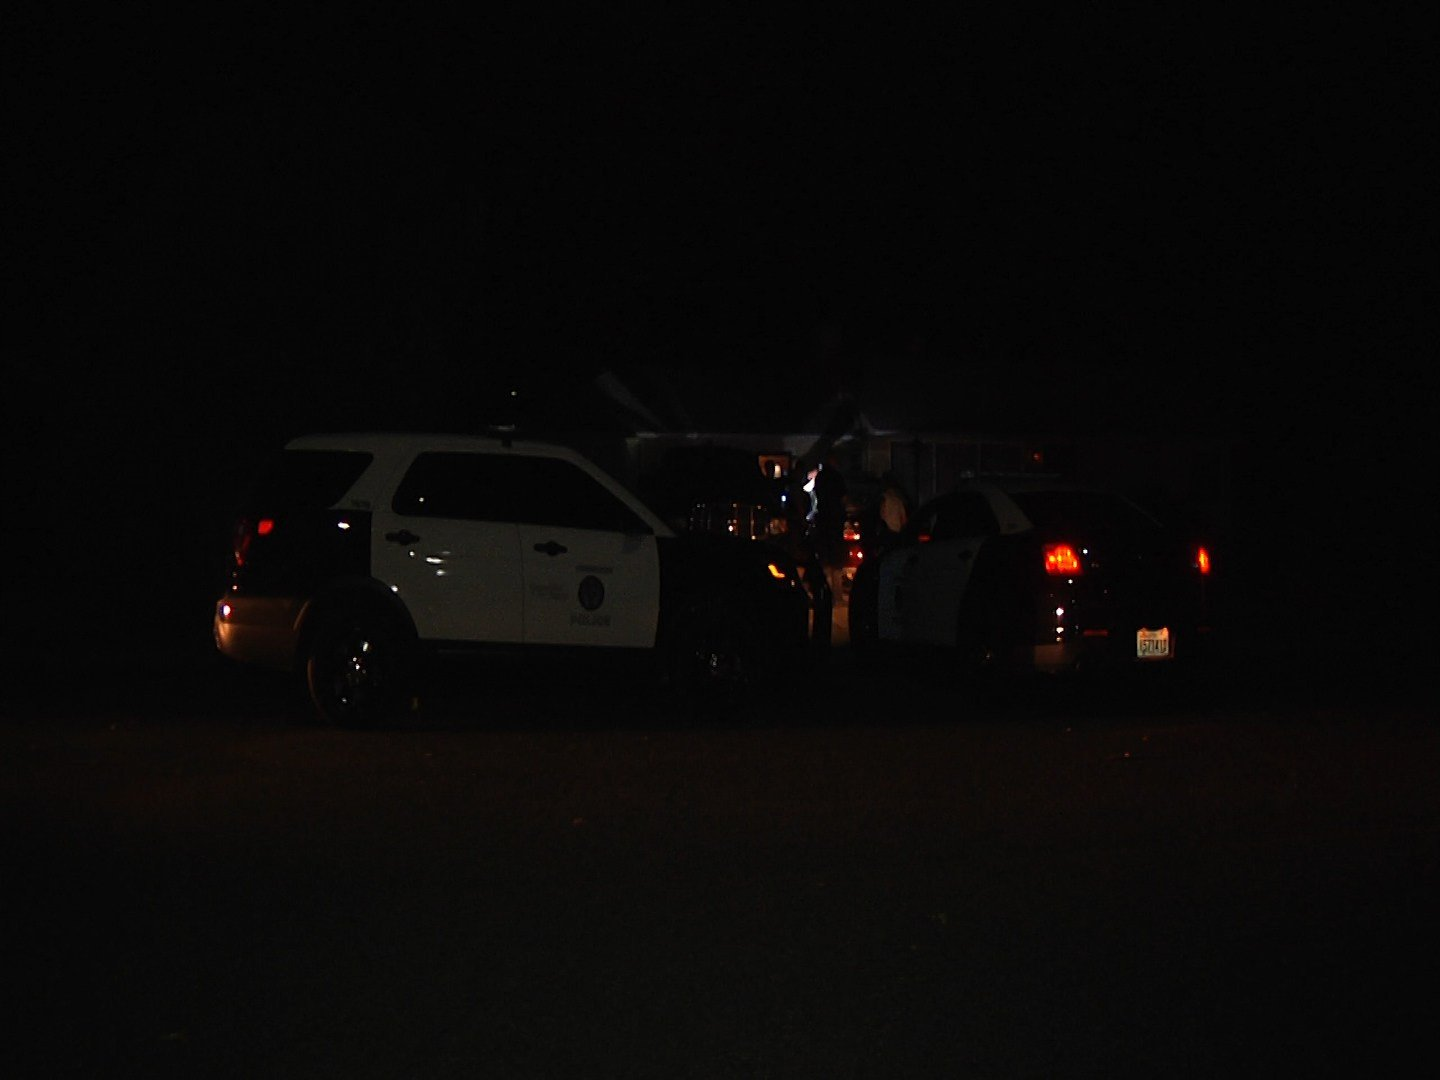 Attempted Robbery on 100 block of N. Irby St., Kennewick